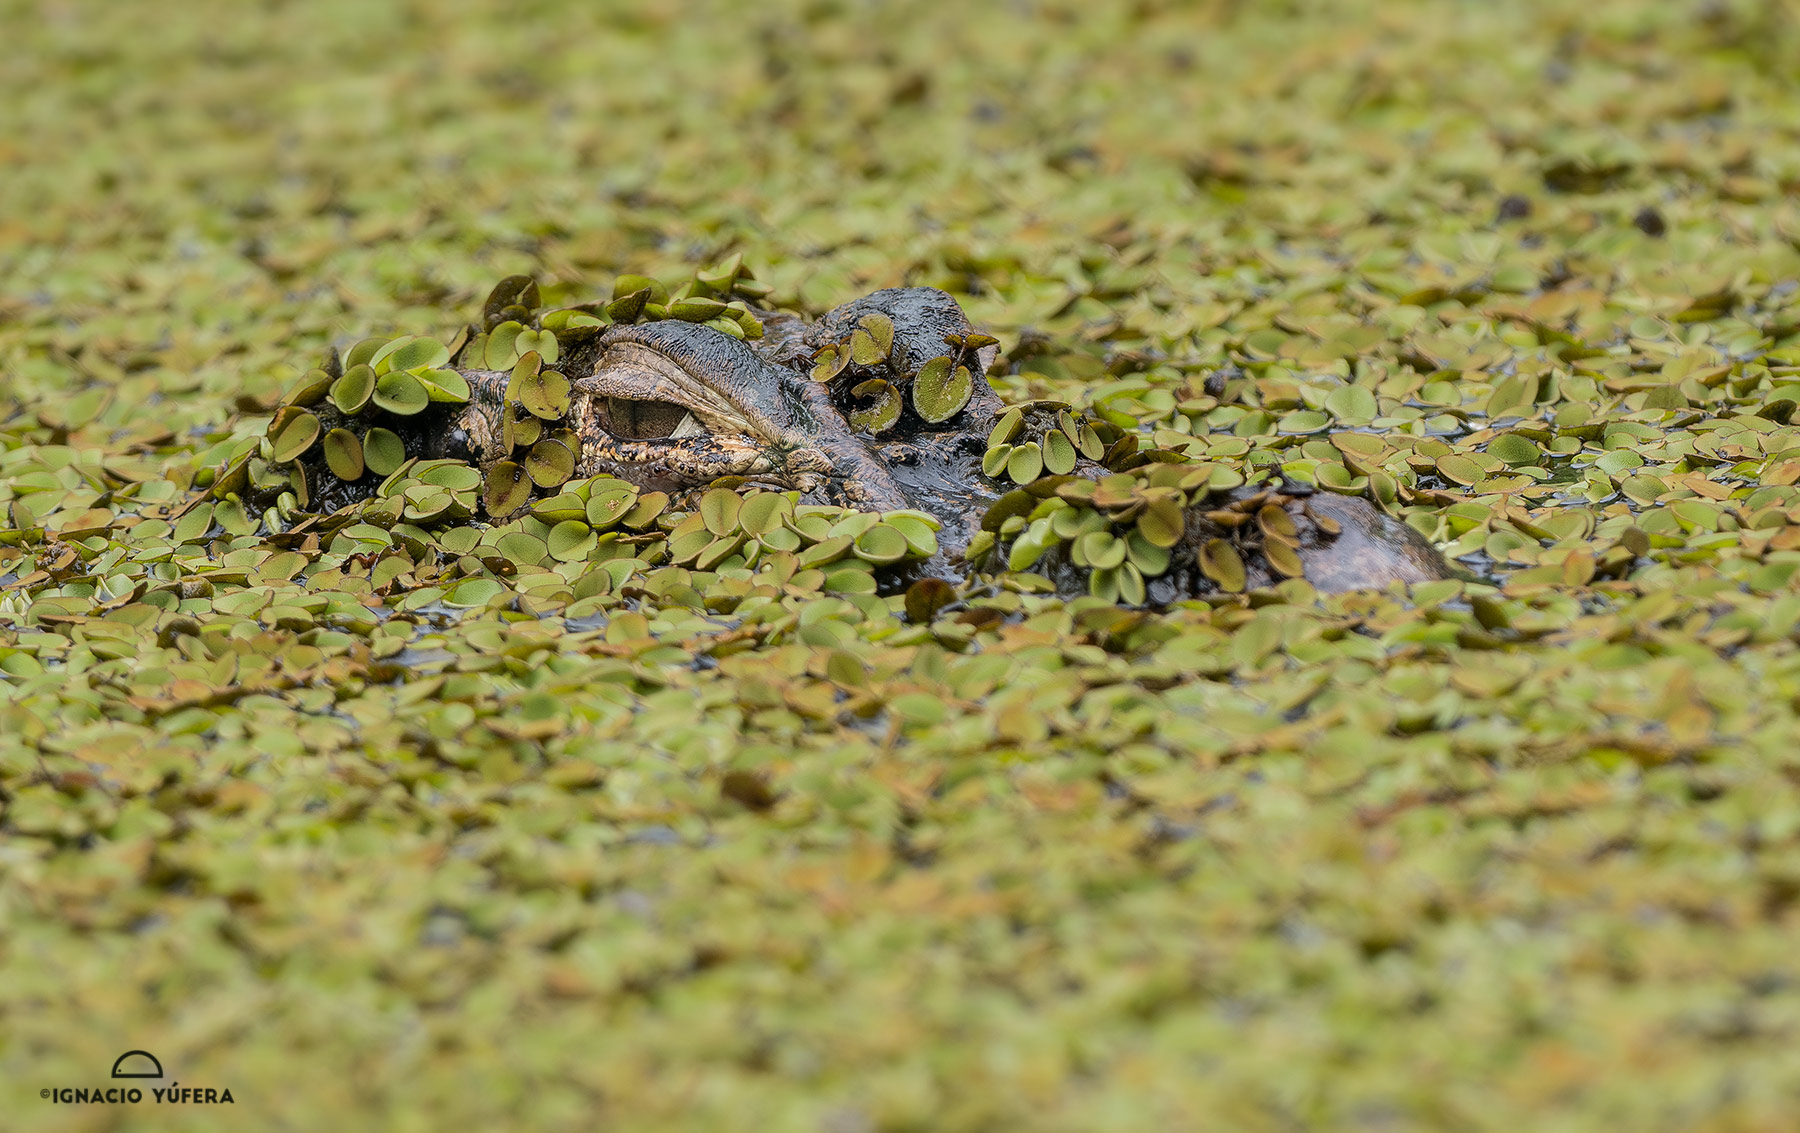 Black Caiman (Melanosuchus niger), in water lentil covered water, Amazonas, Brazil